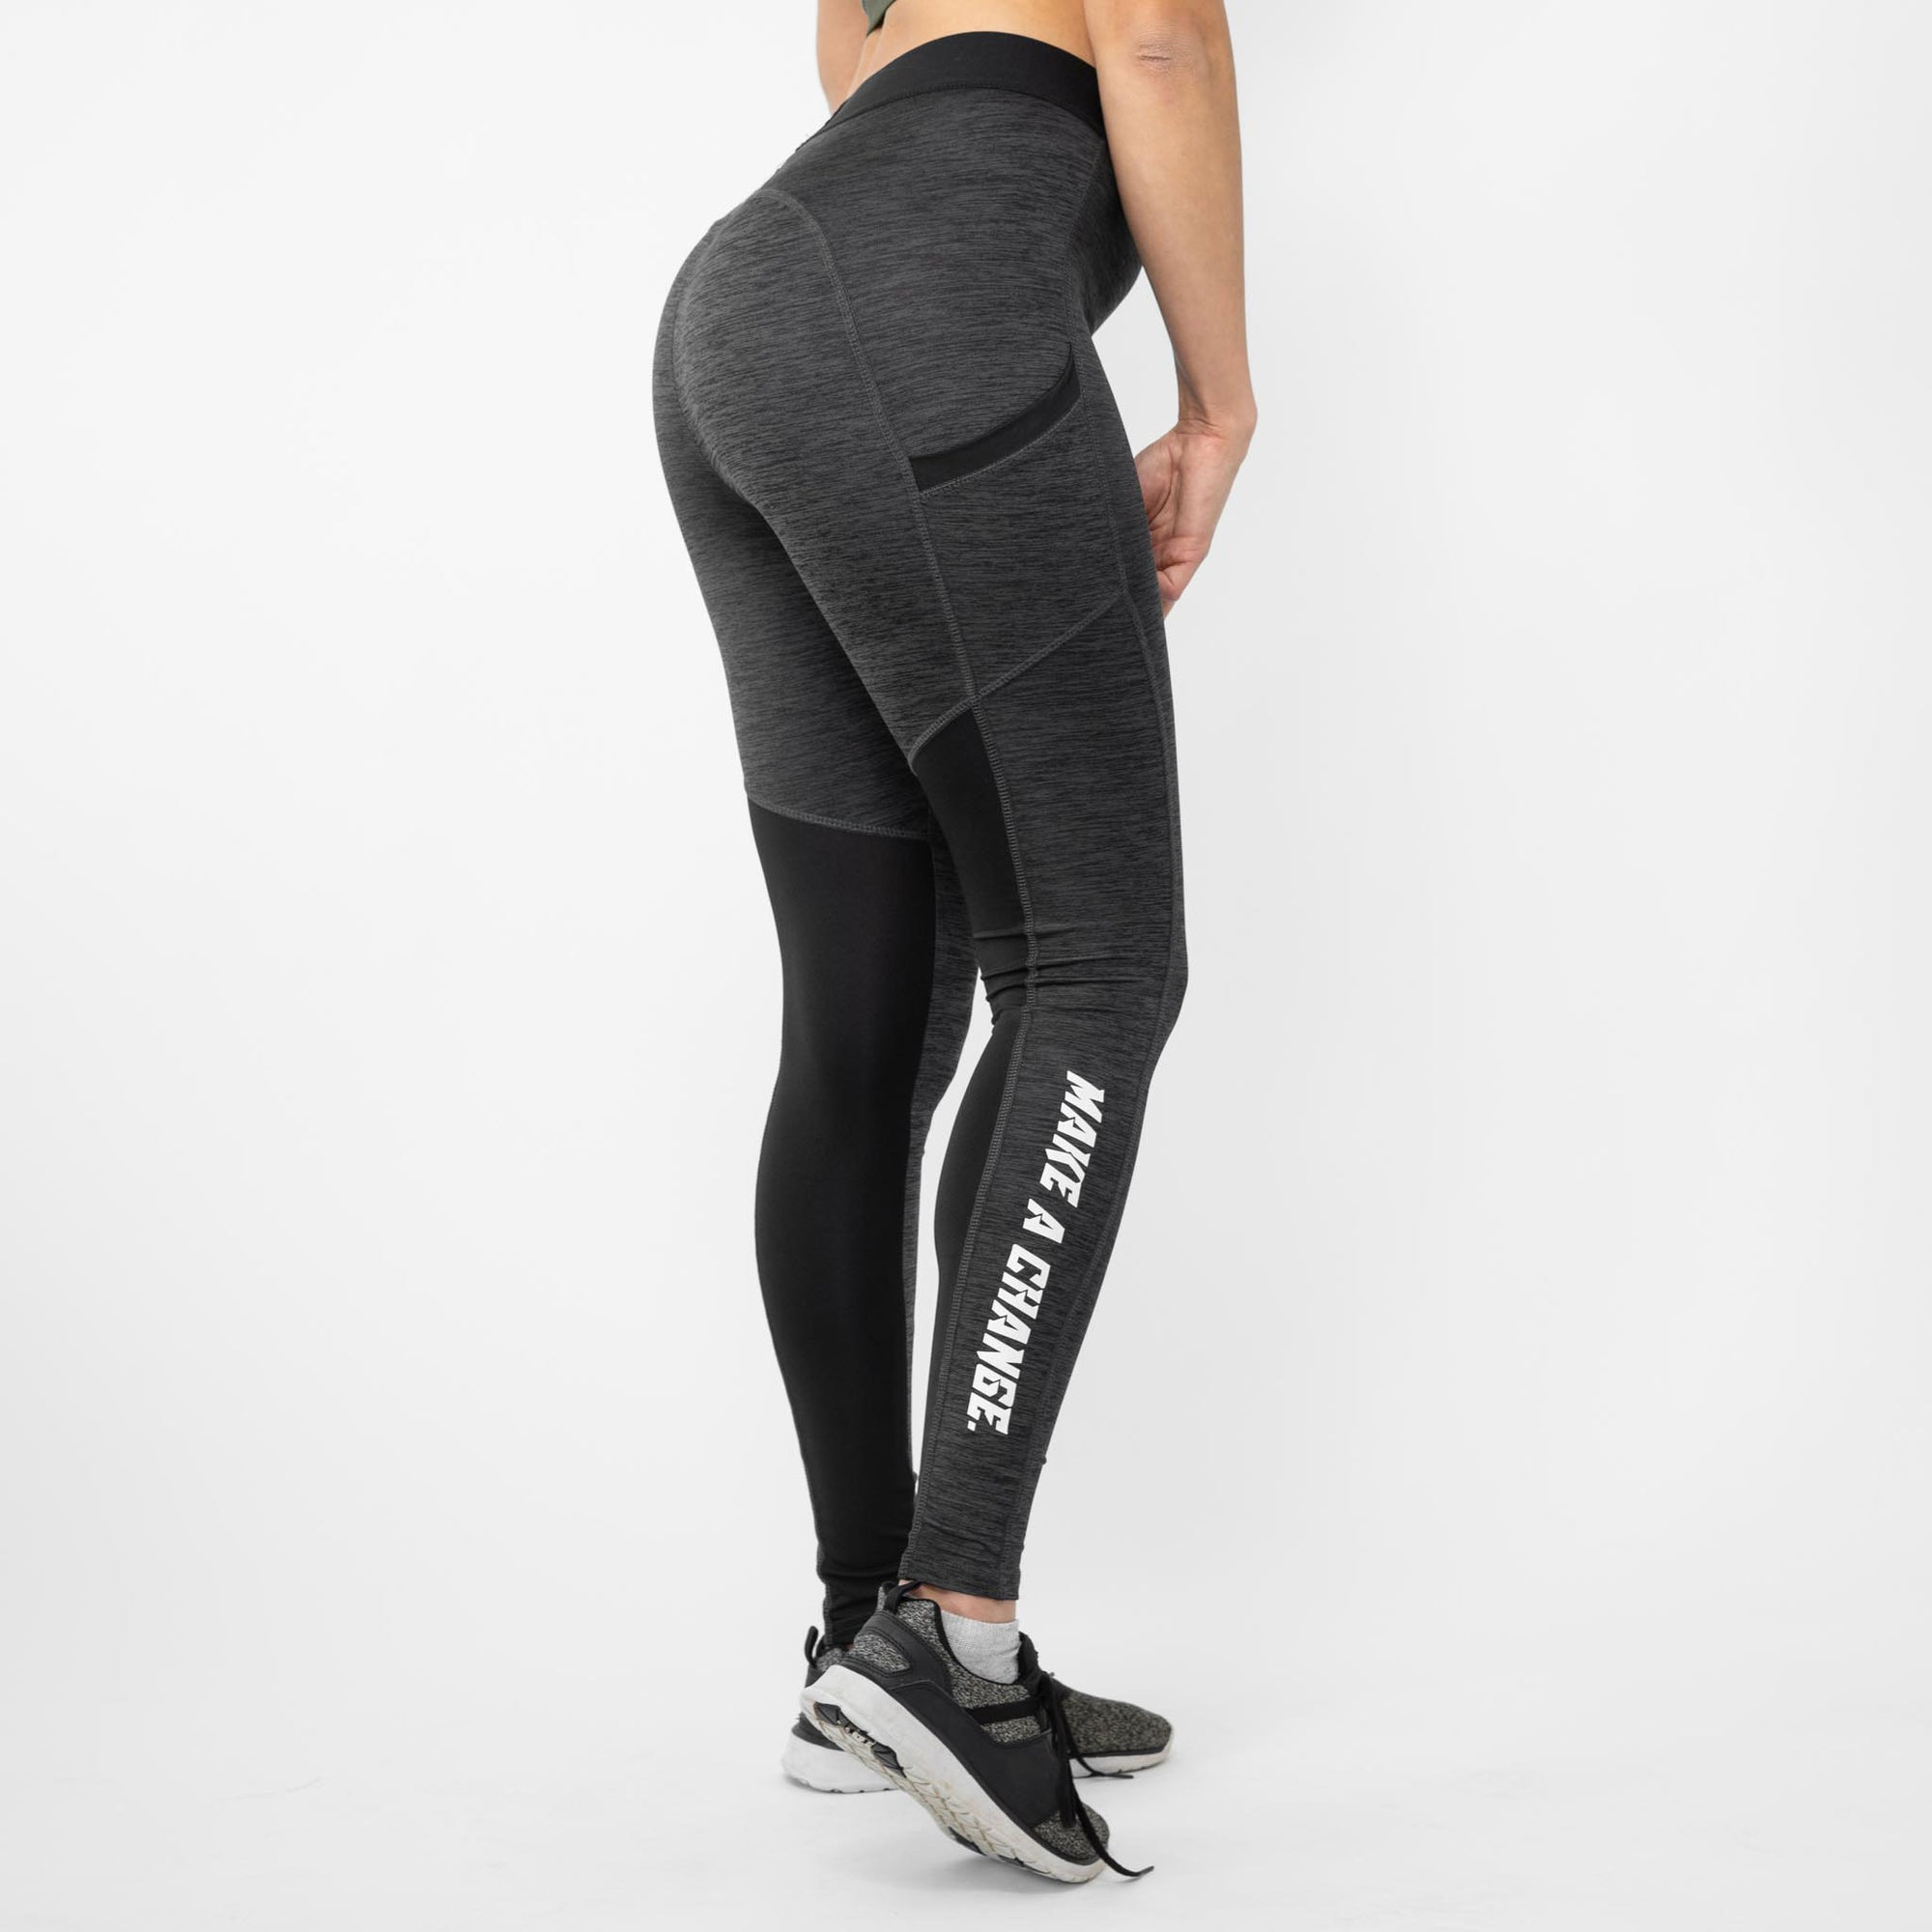 Gainz4Change Legacy Leggings Slate Melange - Gainz4Change